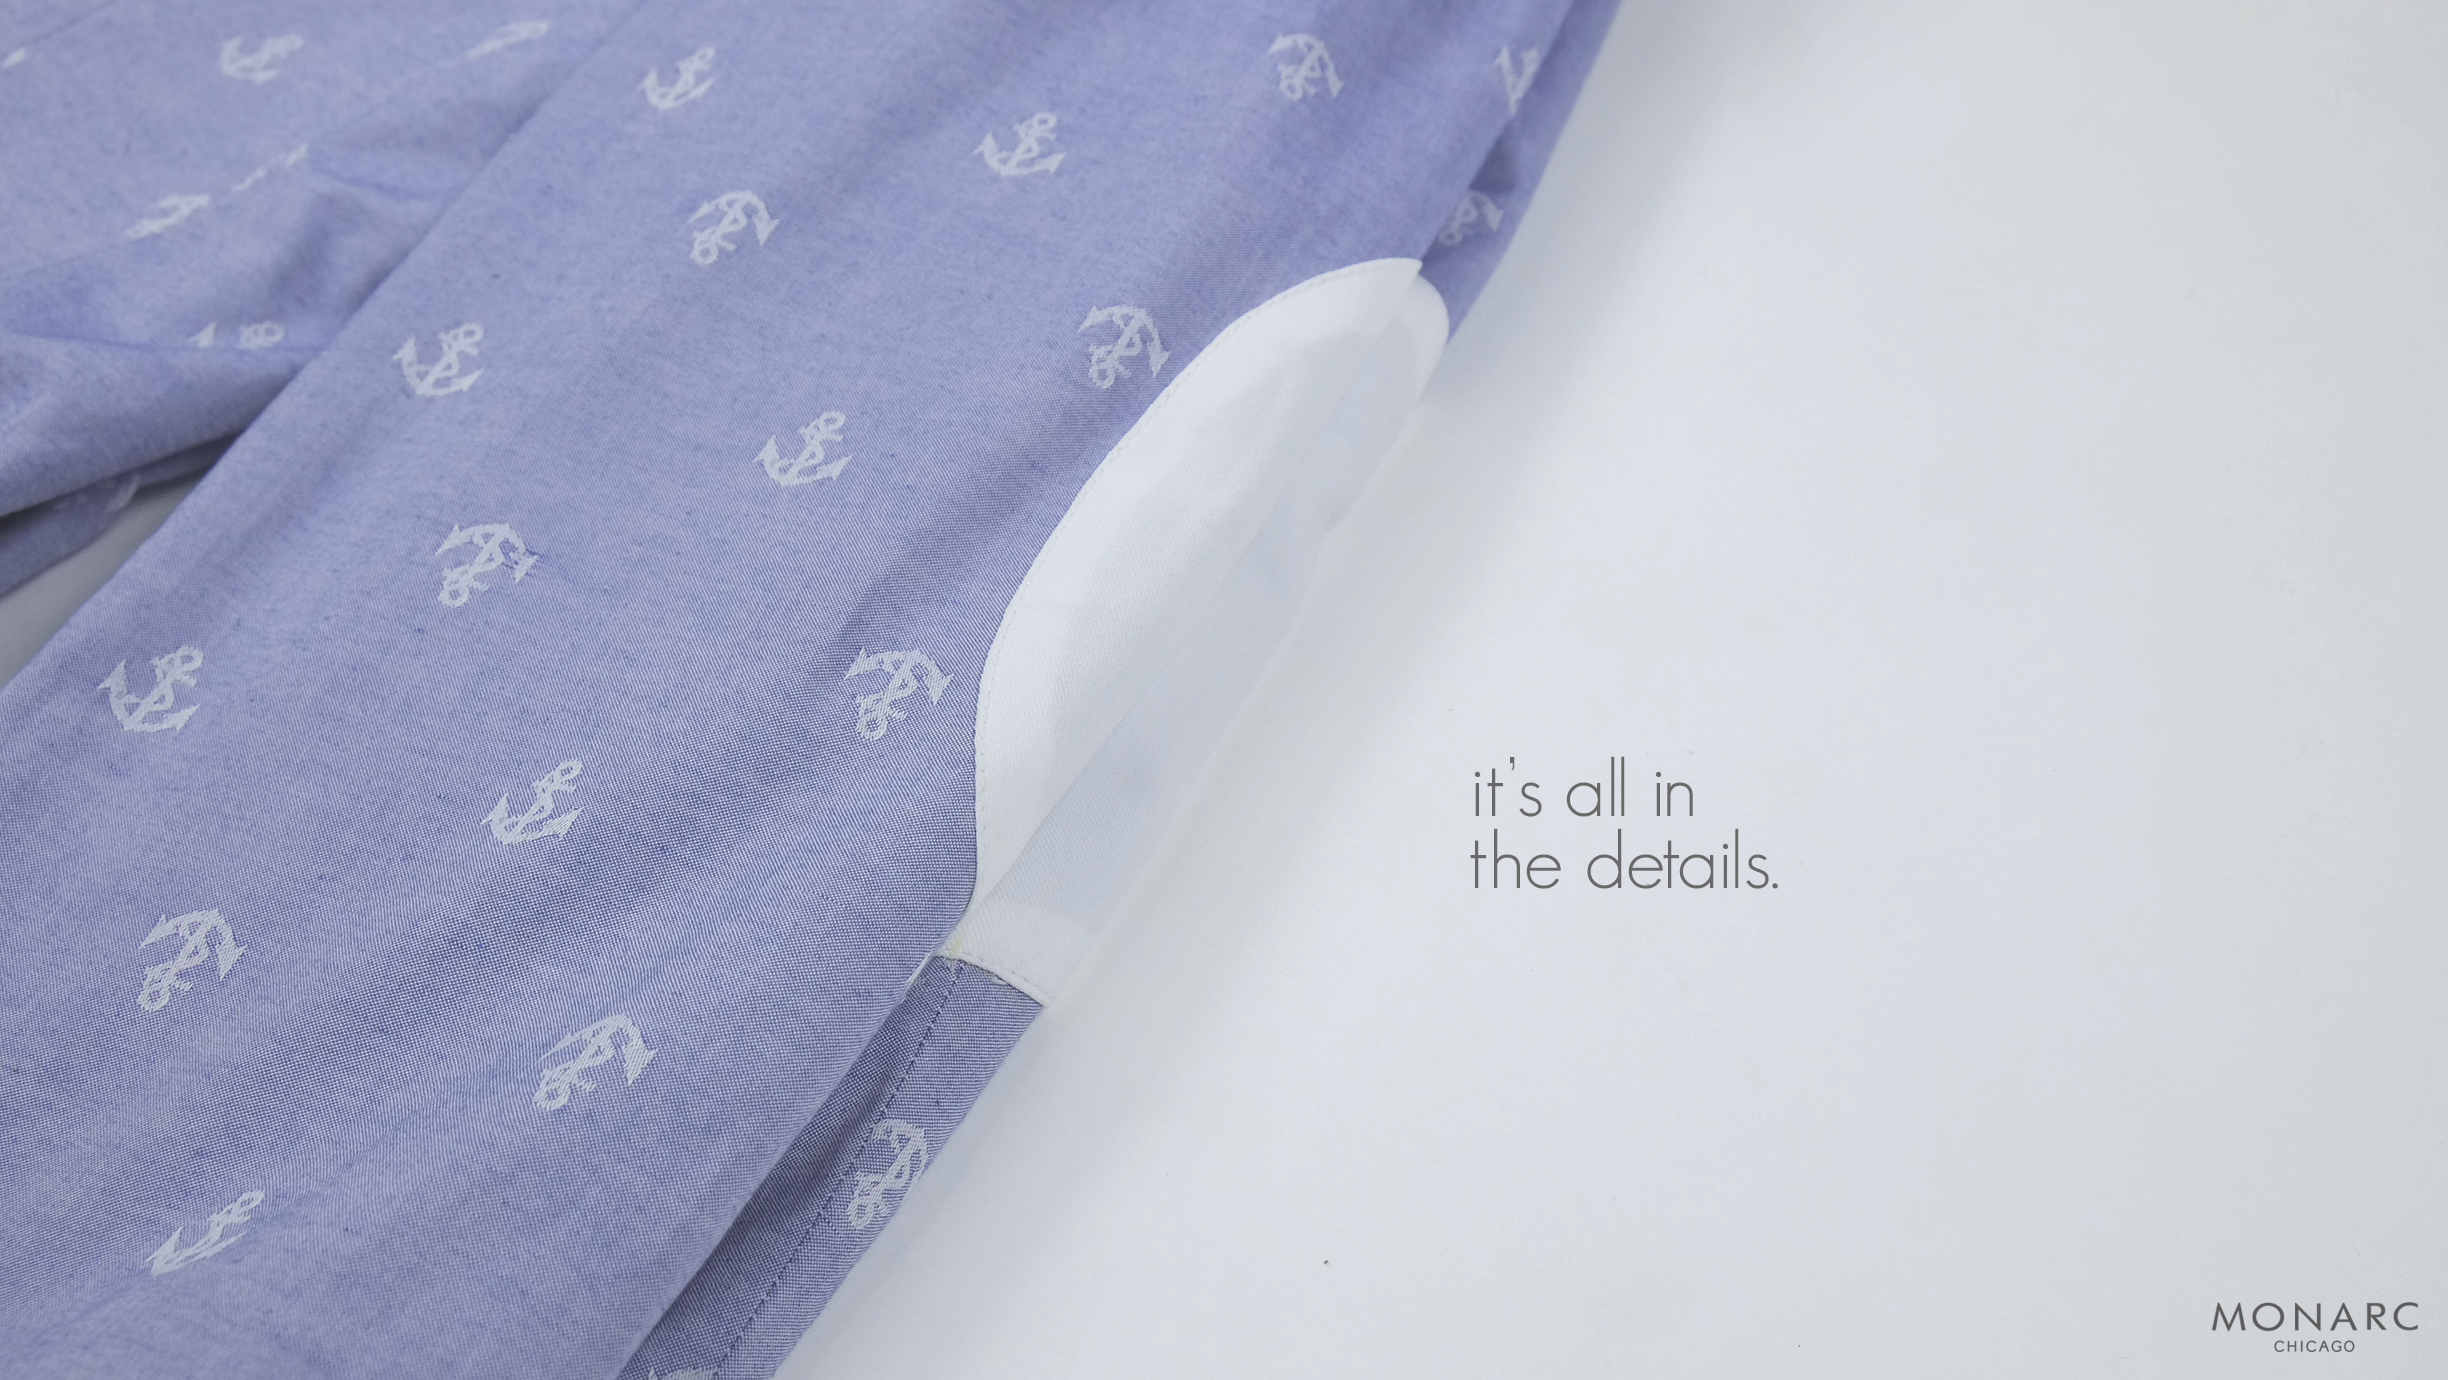 Nautical_Details_text.png